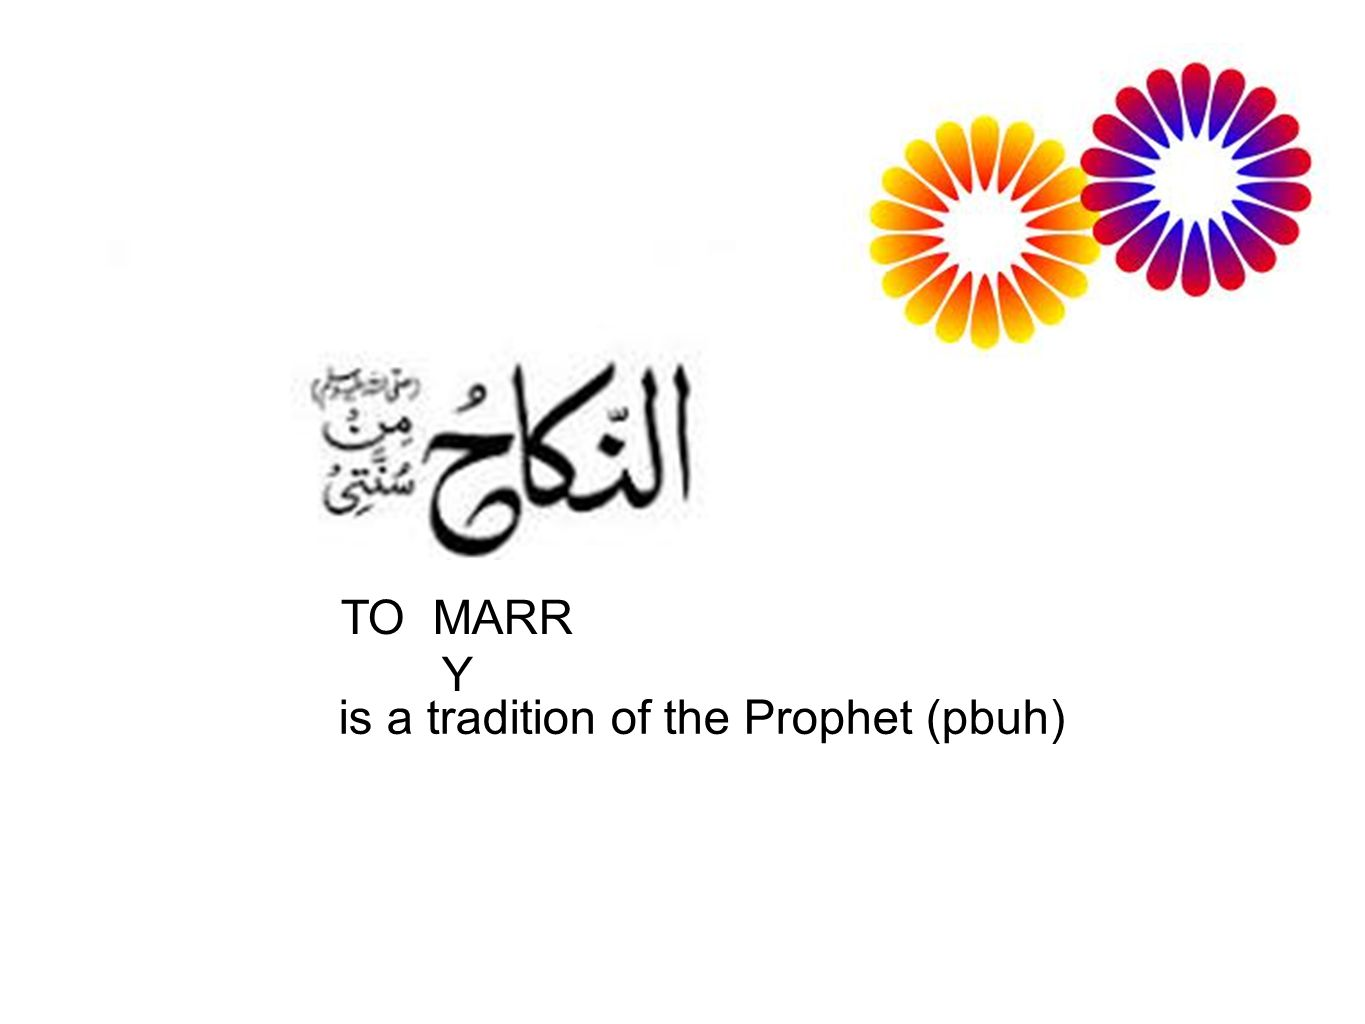 is a tradition of the Prophet (pbuh)